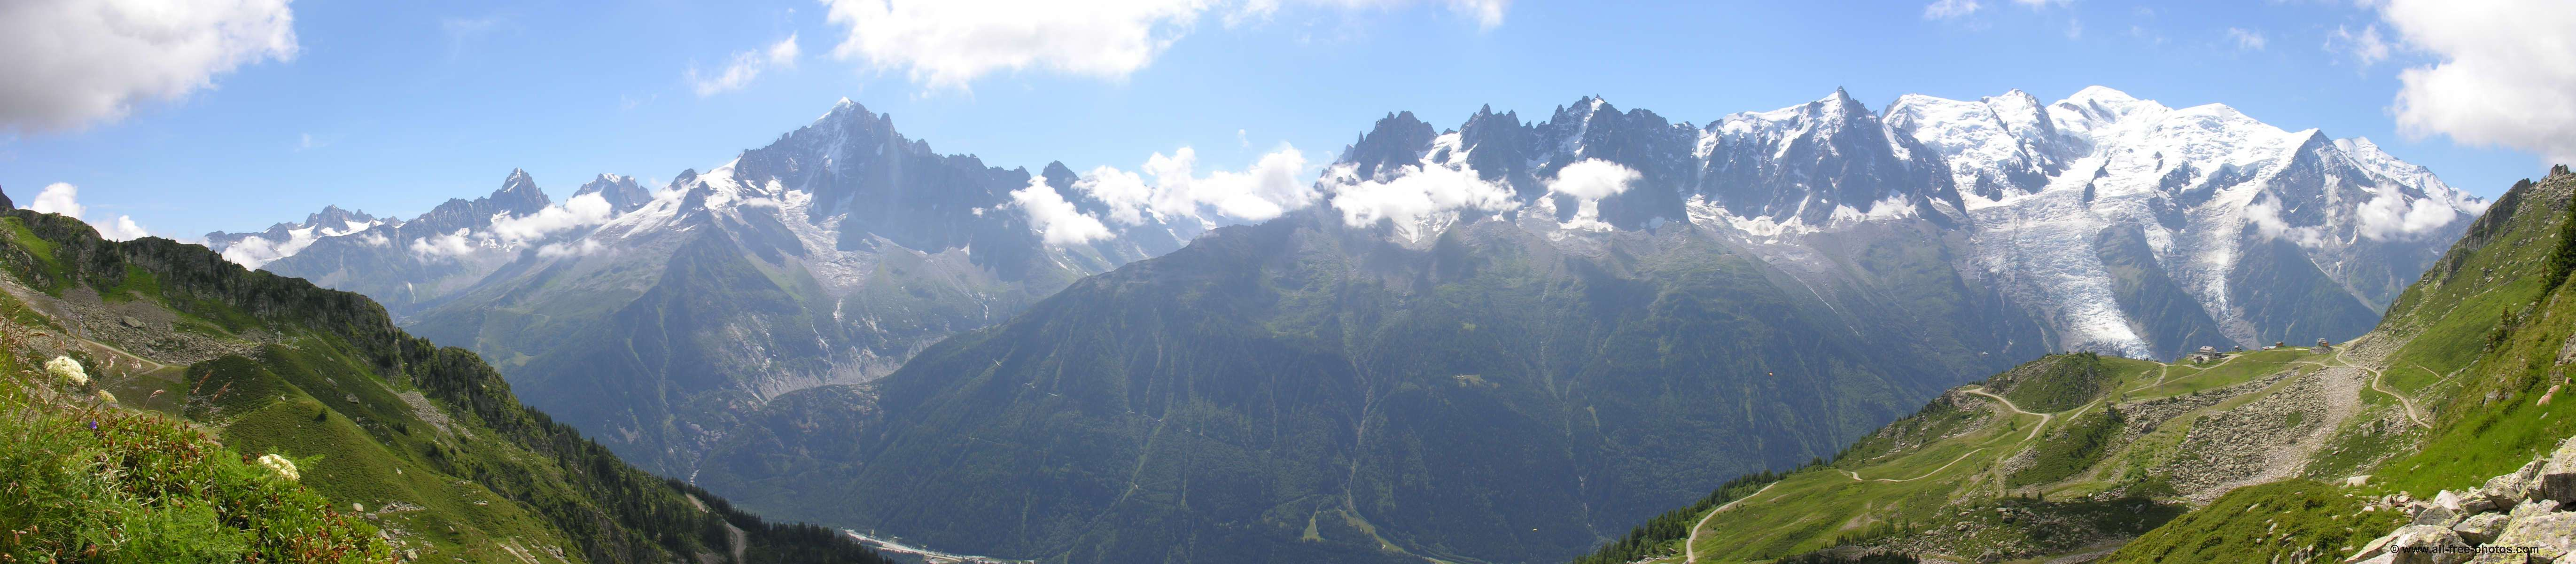 Massif du Mont Blanc - France